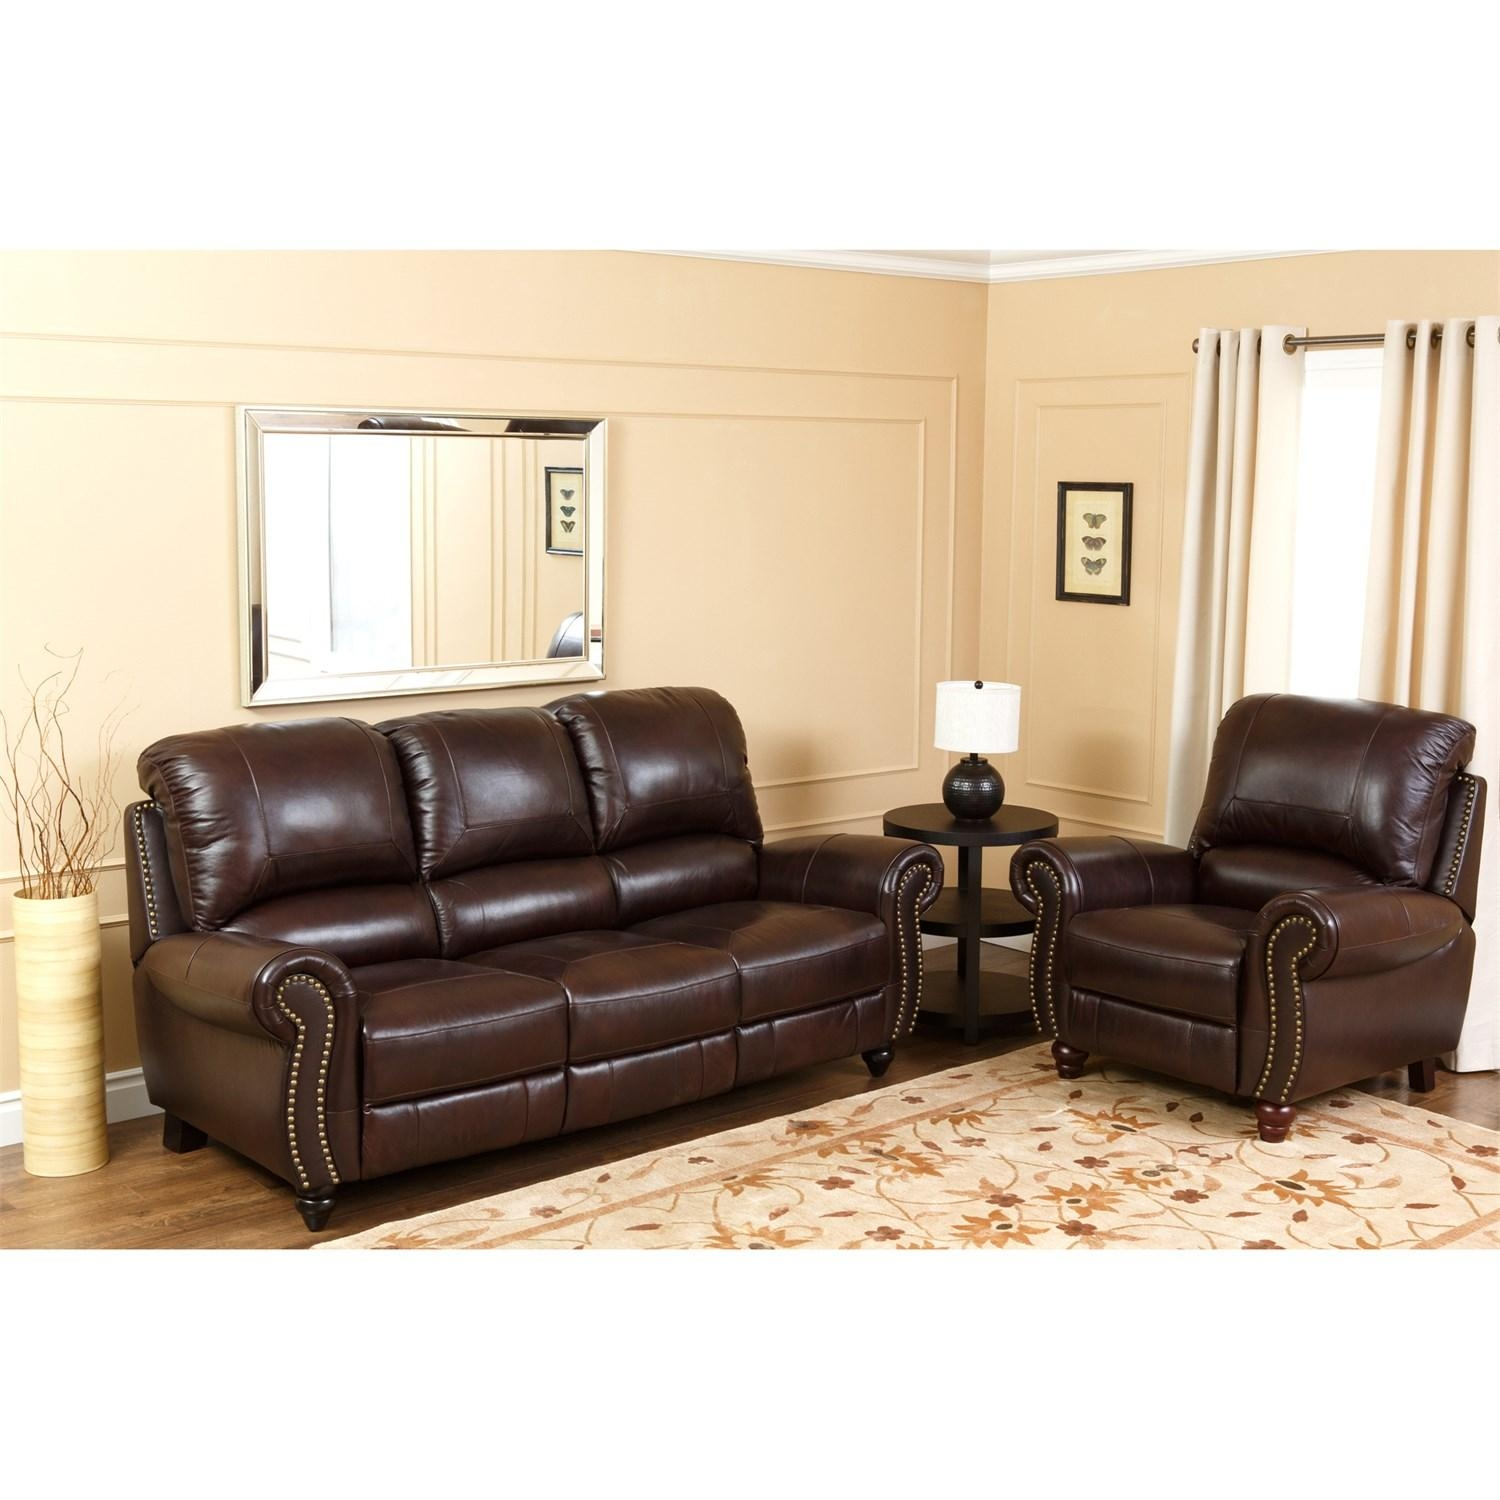 Abbyson Living Ch 8857 Brg 3/1 Canterbury Leather Pushback Within Abbyson Sofas (Image 7 of 20)